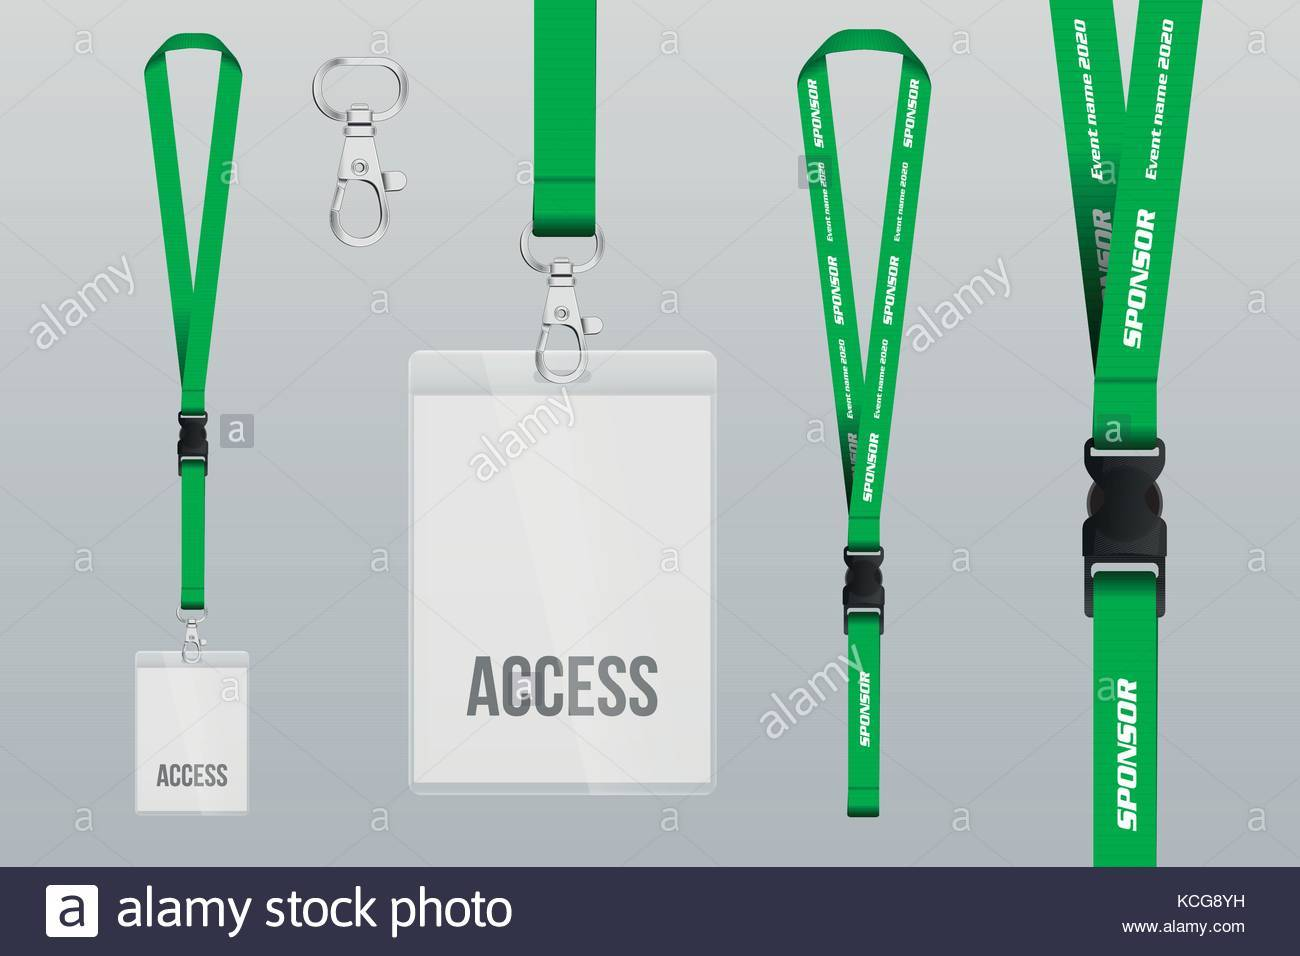 Lanyard Design Template